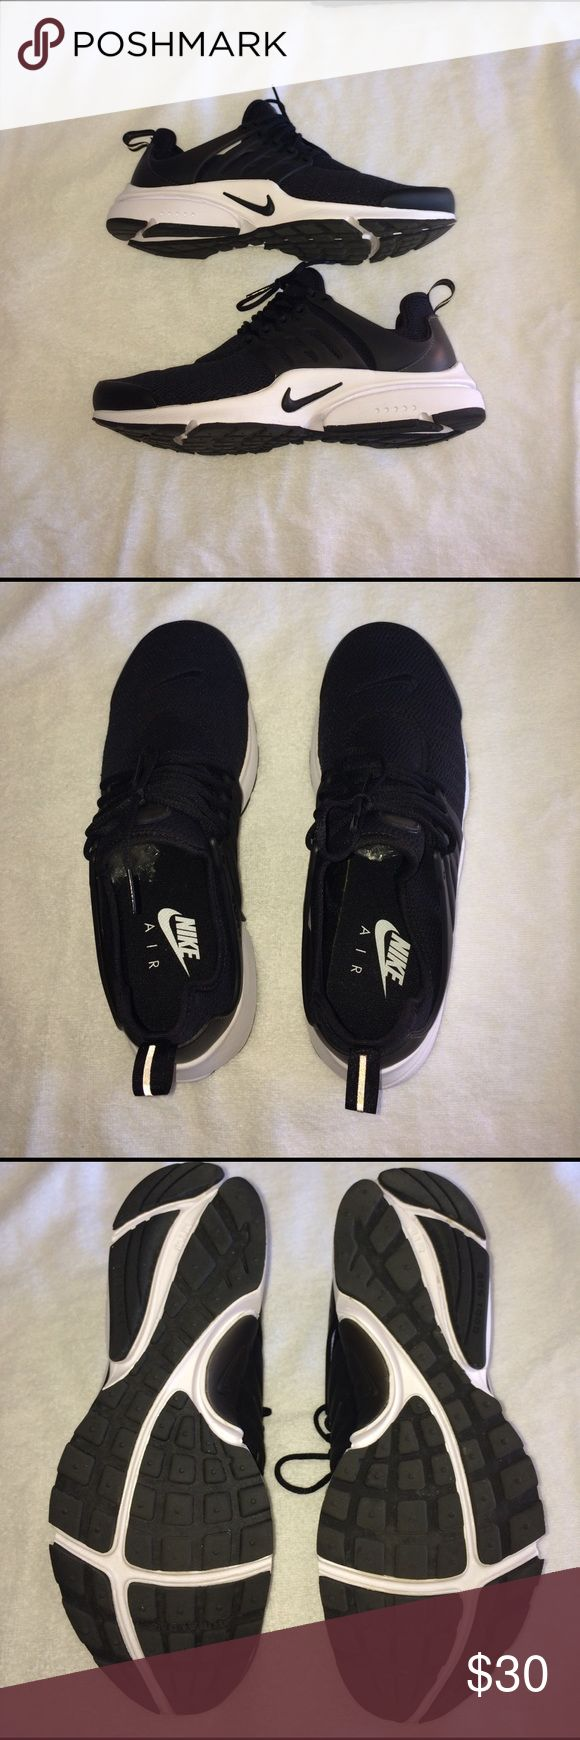 Nike air presto sneakers Black and white nike air presto sneakers. Worn only a few times with sock liner construction Nike Shoes Sneakers